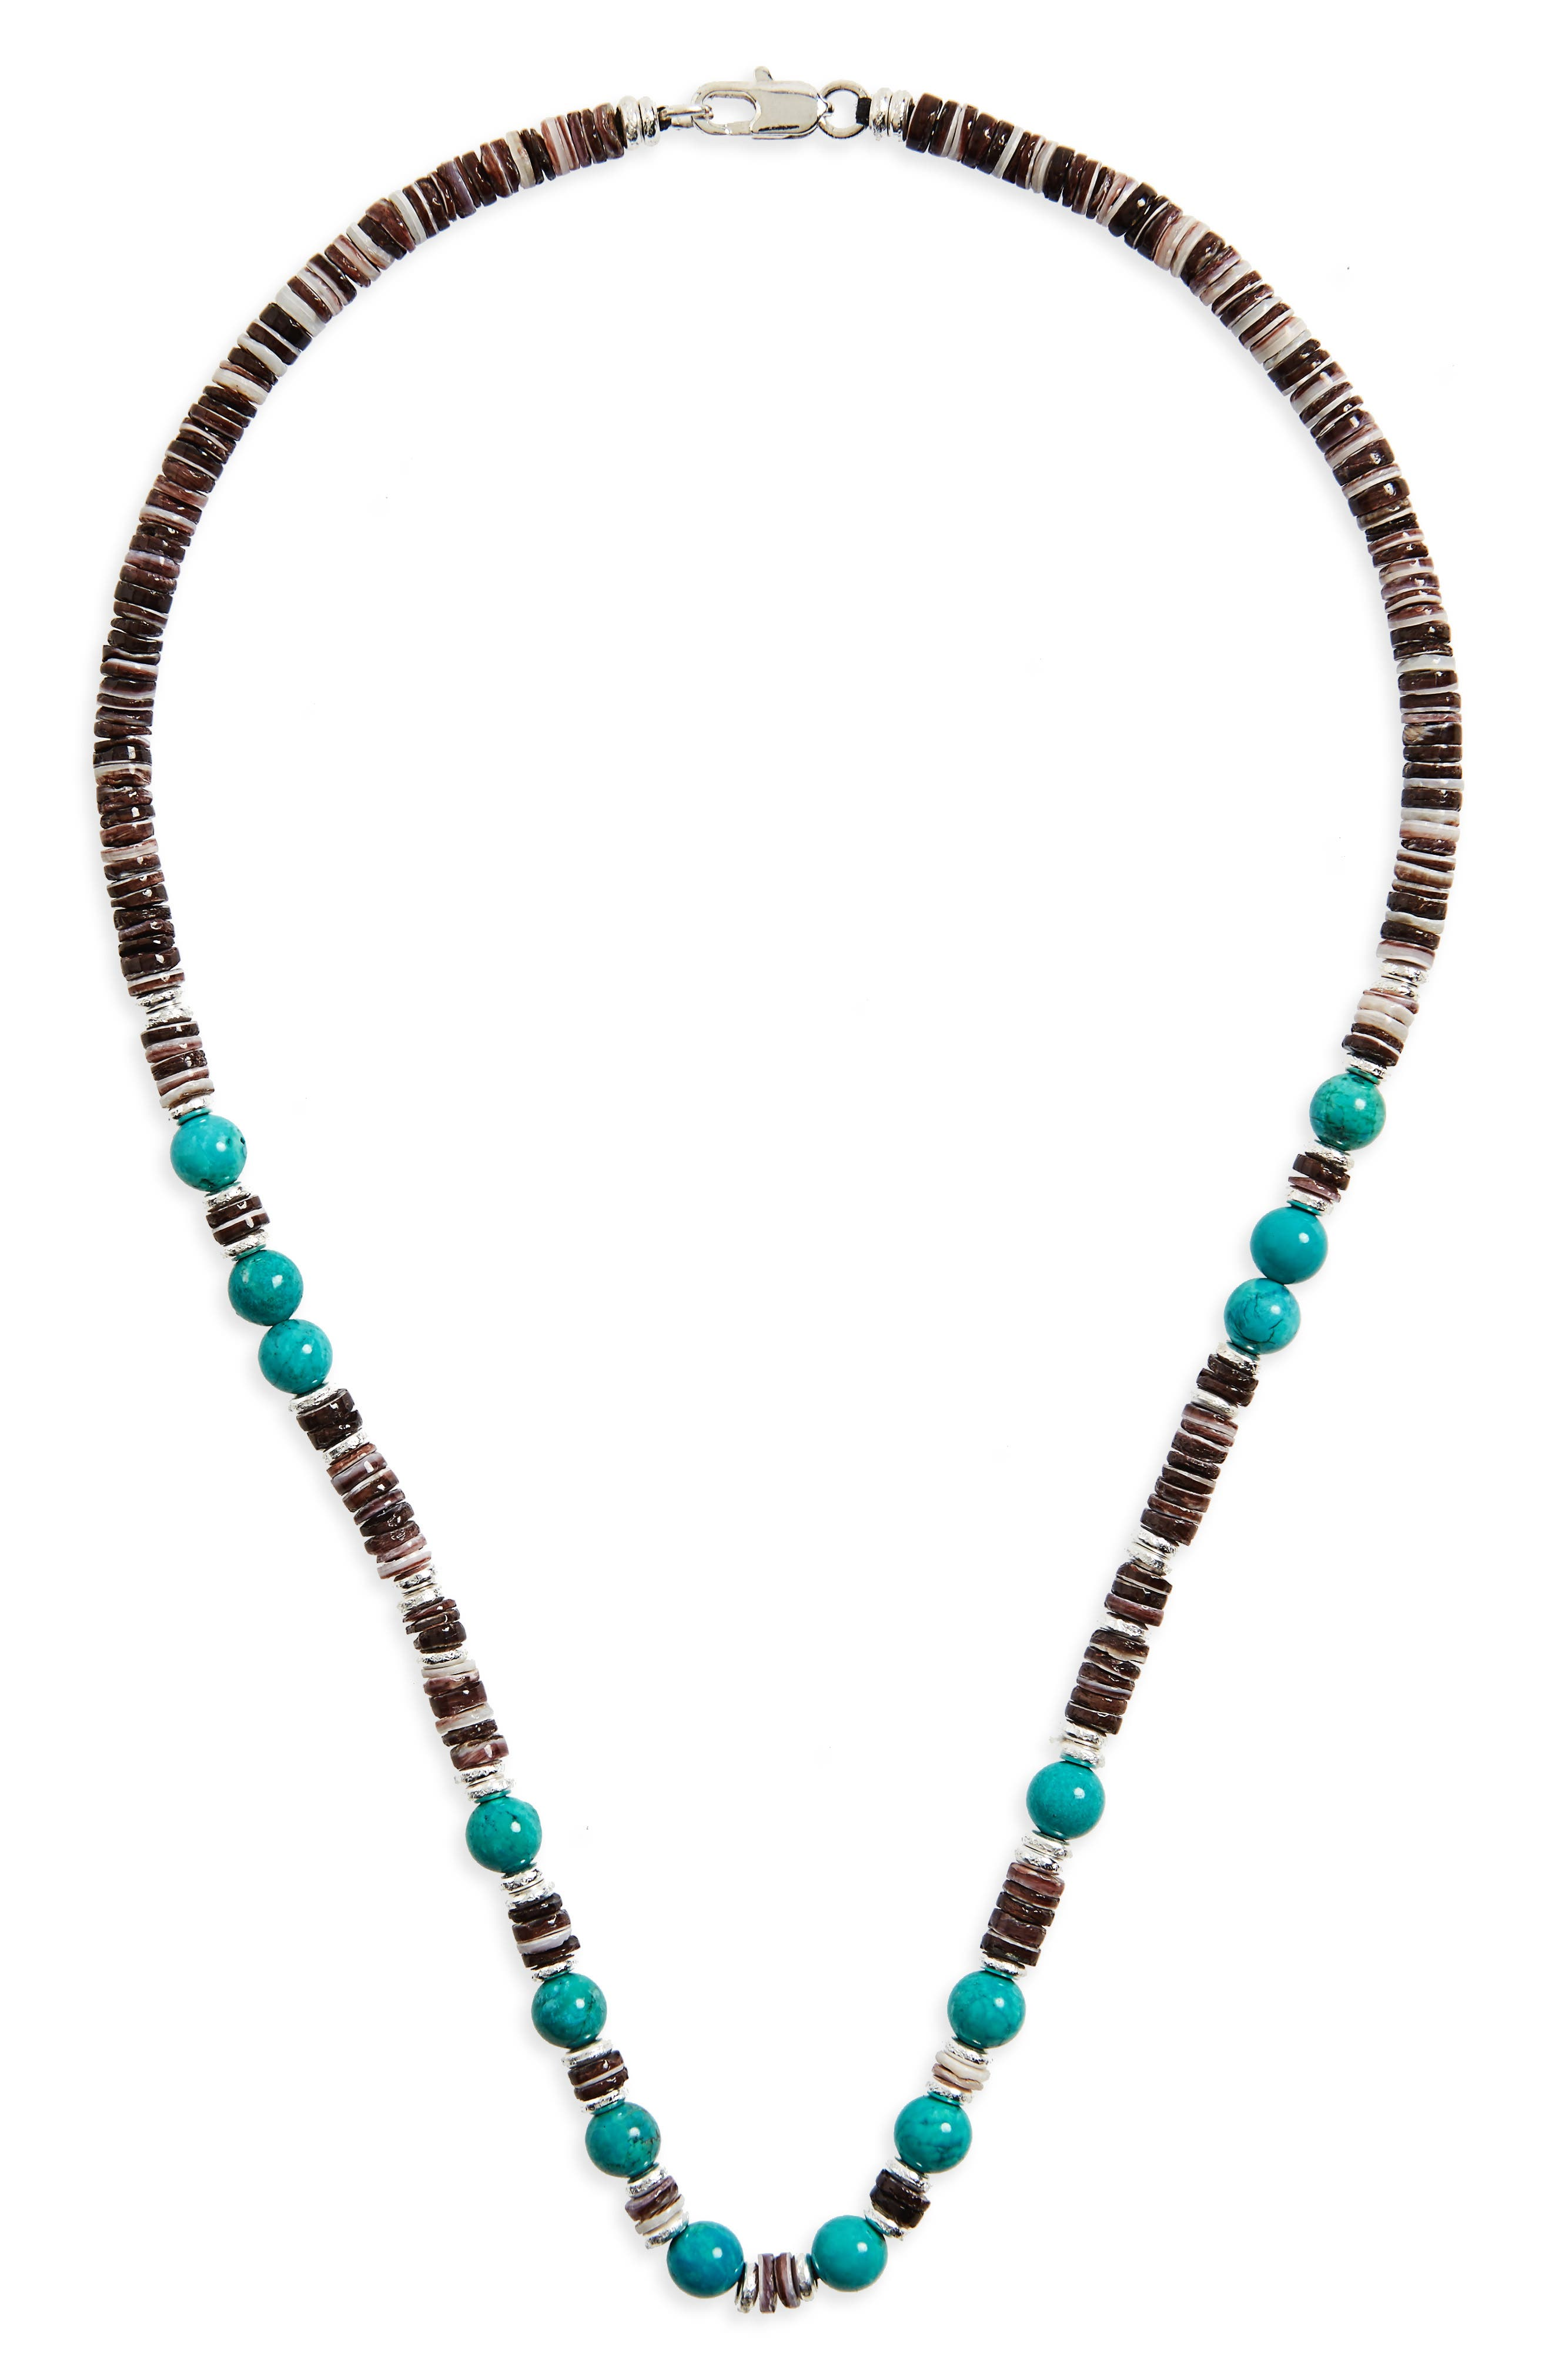 Main Image - Link Up Shell Bead Necklace